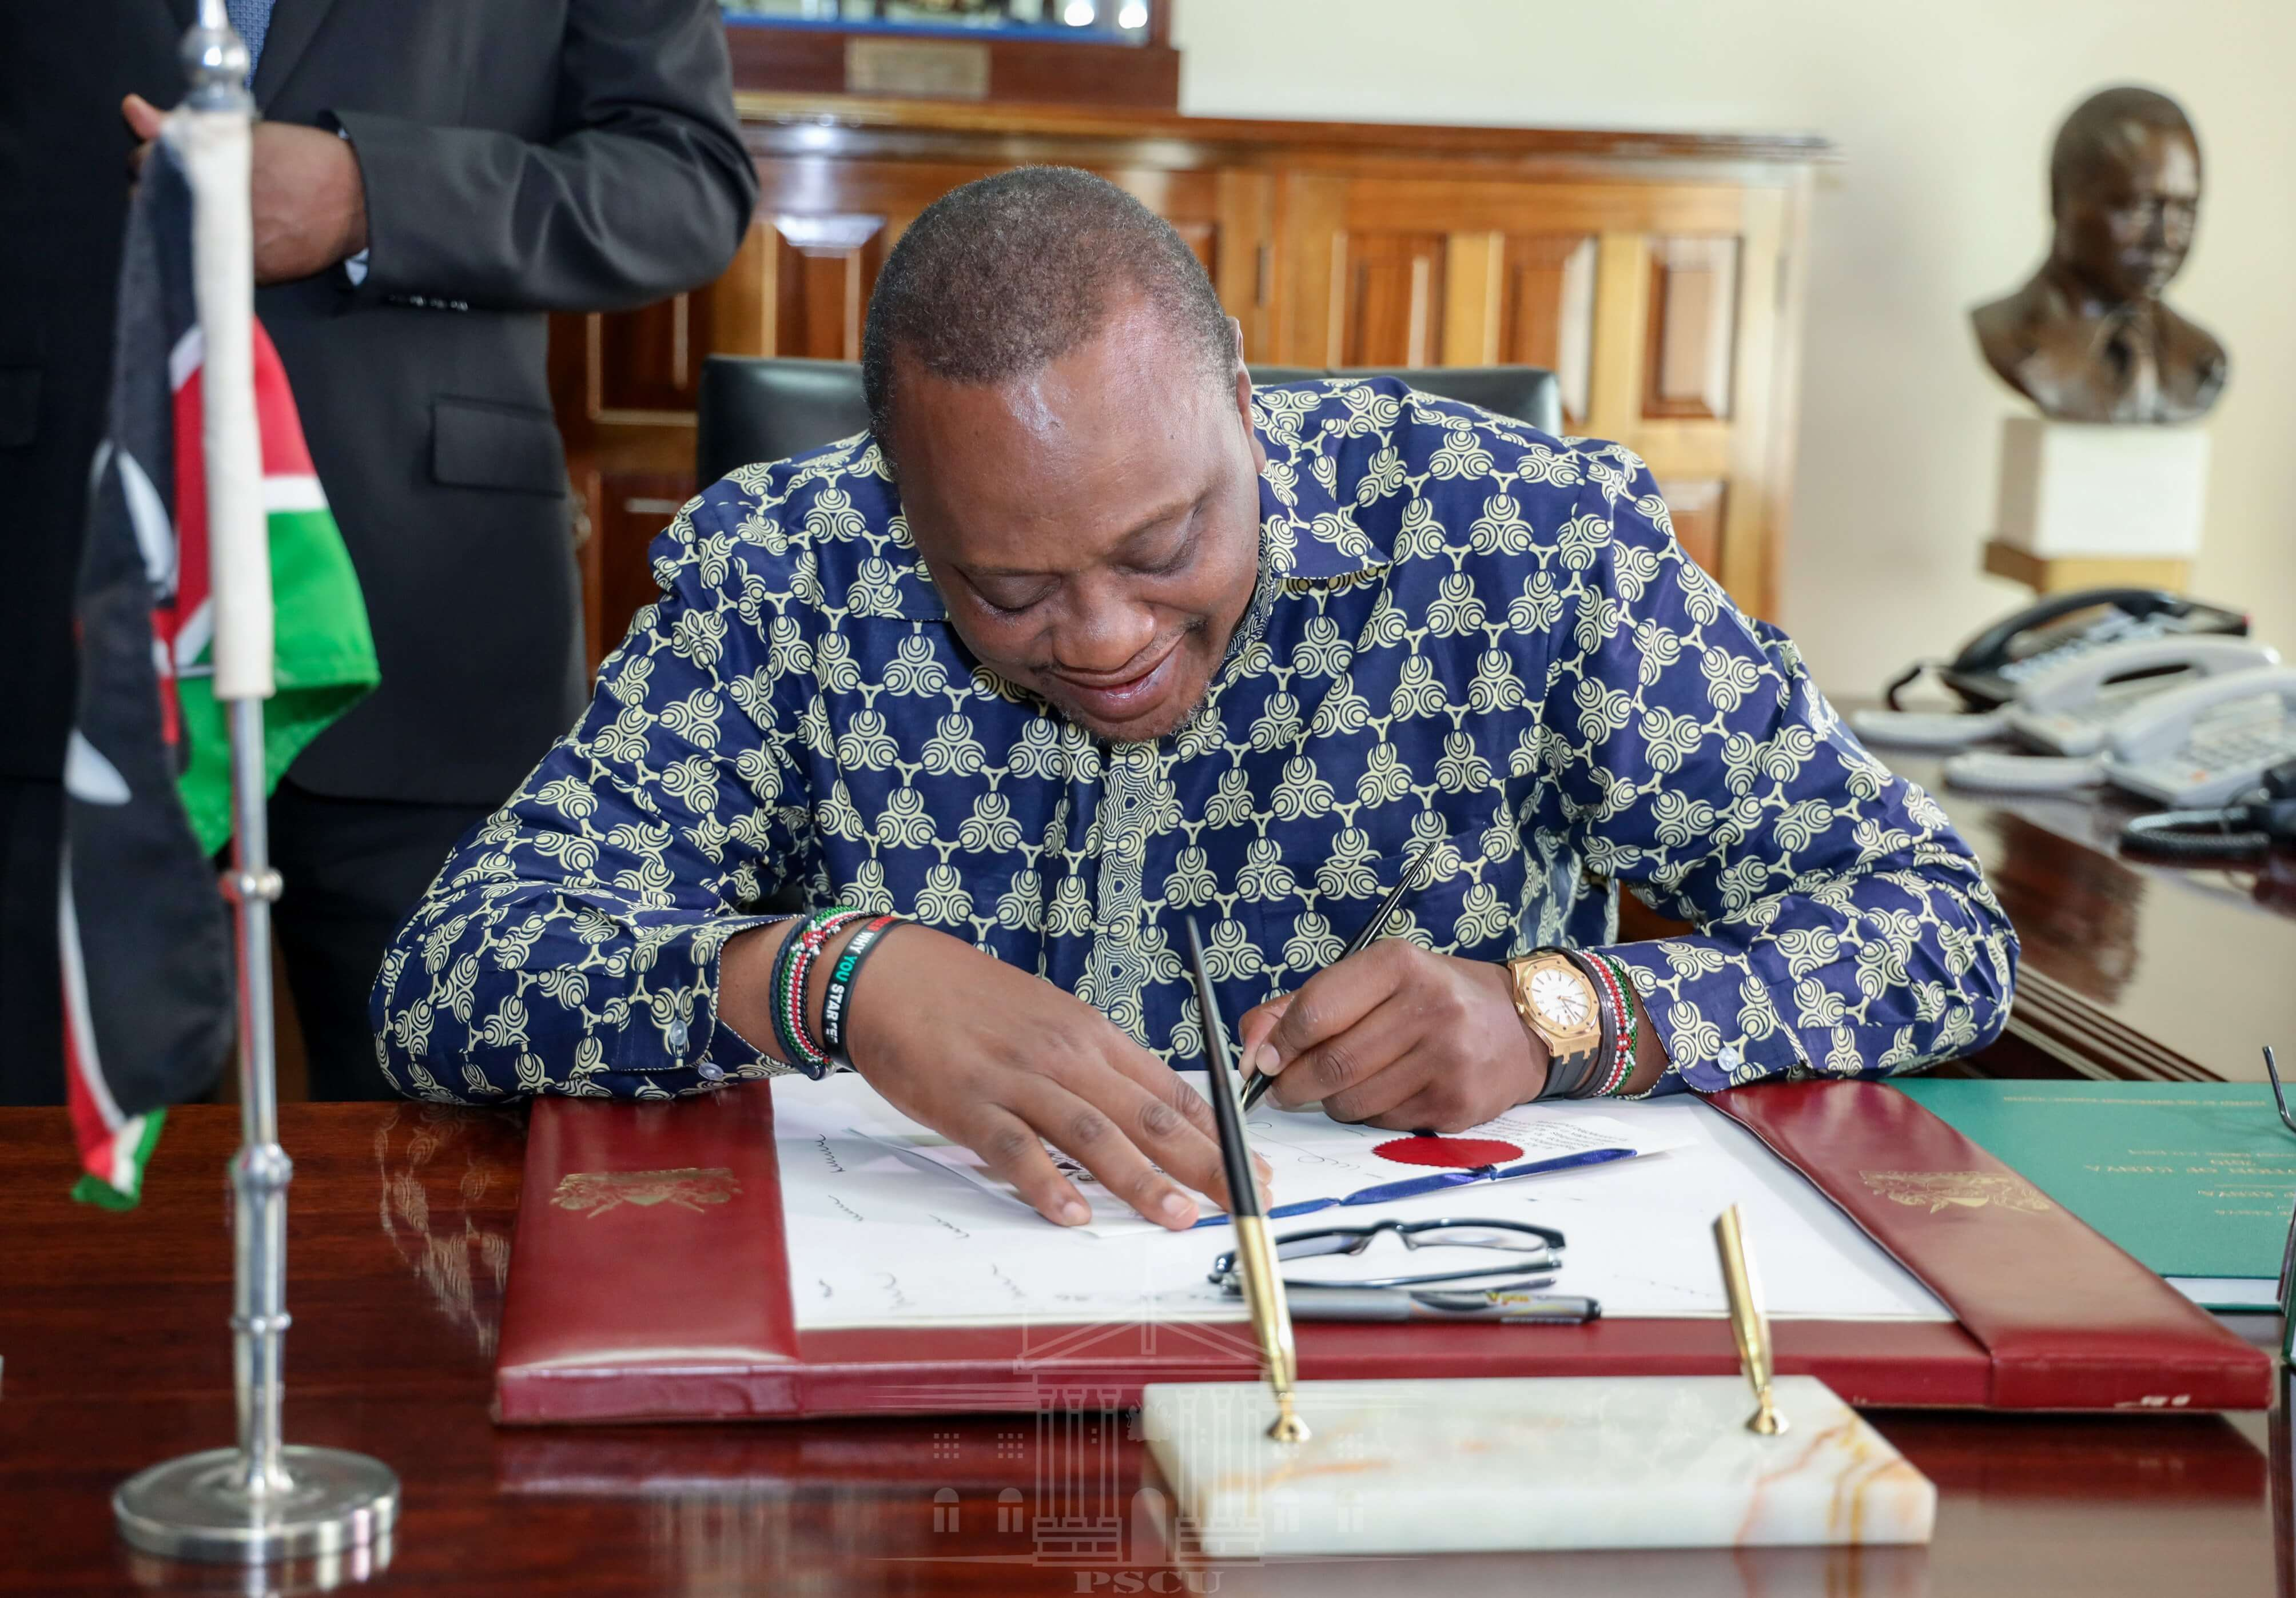 President Uhuru Kenyatta, who is left-handed, signs a Bill into law. Researchers have established thatin left-handed participants, the language areas of the left and right sides of the brain communicate with each other in a more coordinated way. www.businesstoday.co.ke